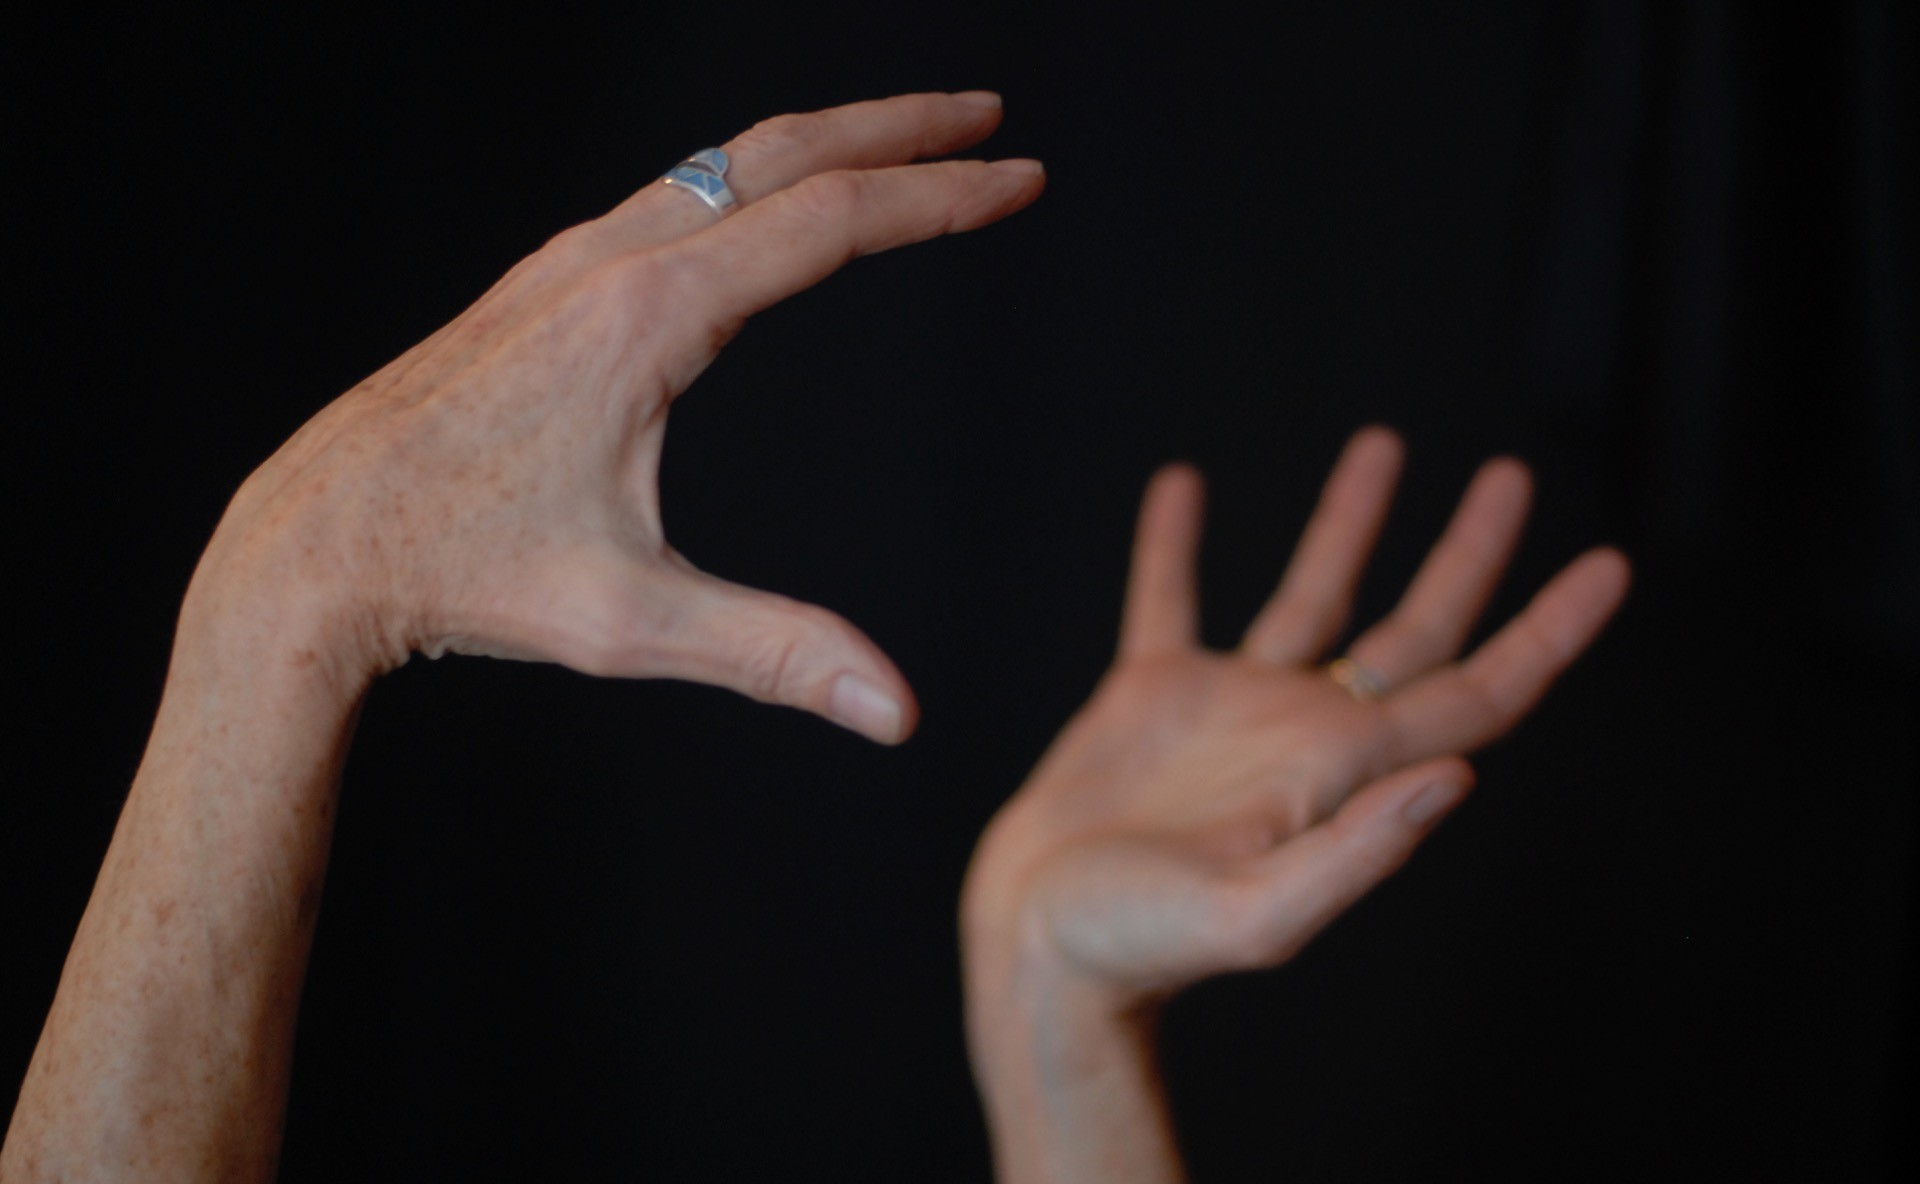 A storyteller's hands grasp an unseen object, illustrating nonfiction narratives, which are complex and embedded